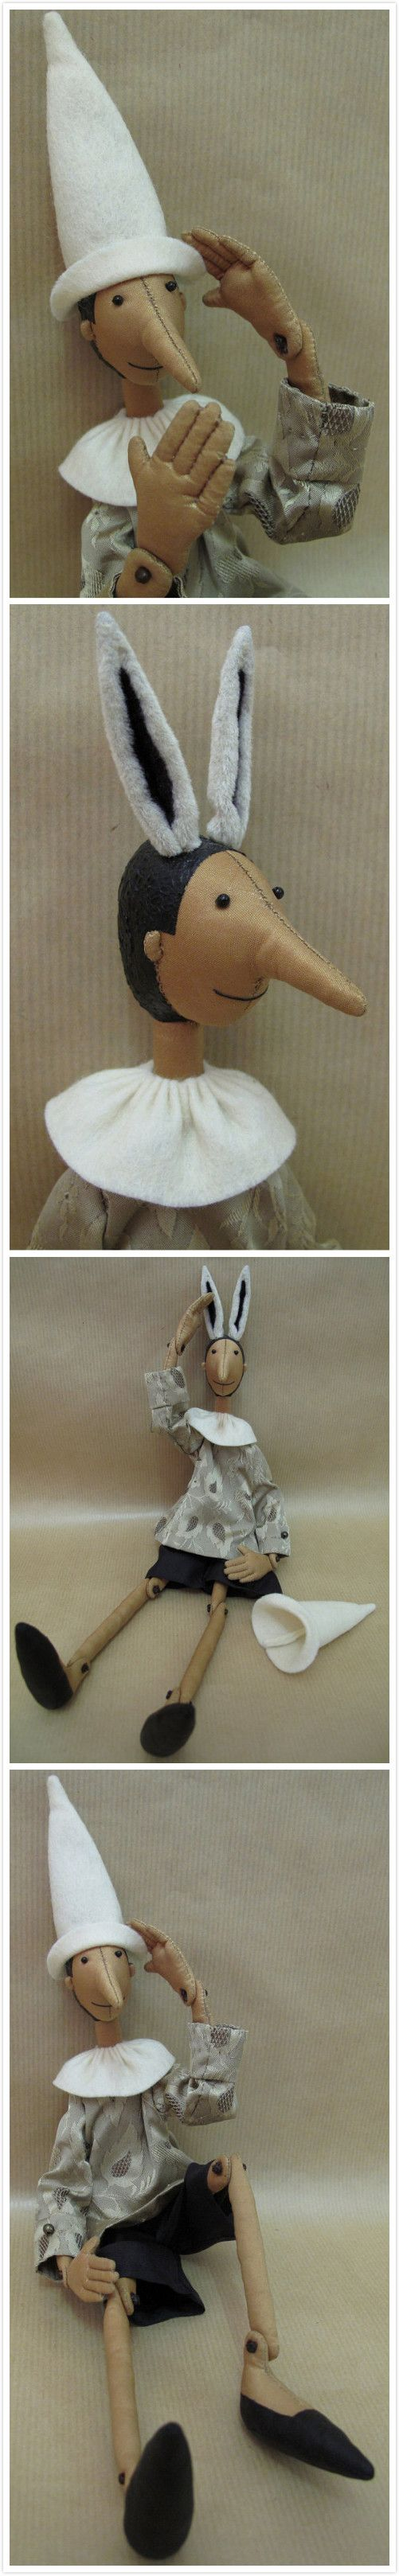 Pinocchio OOAK fabric puppet doll by FRENCH TOUCH COUTURE